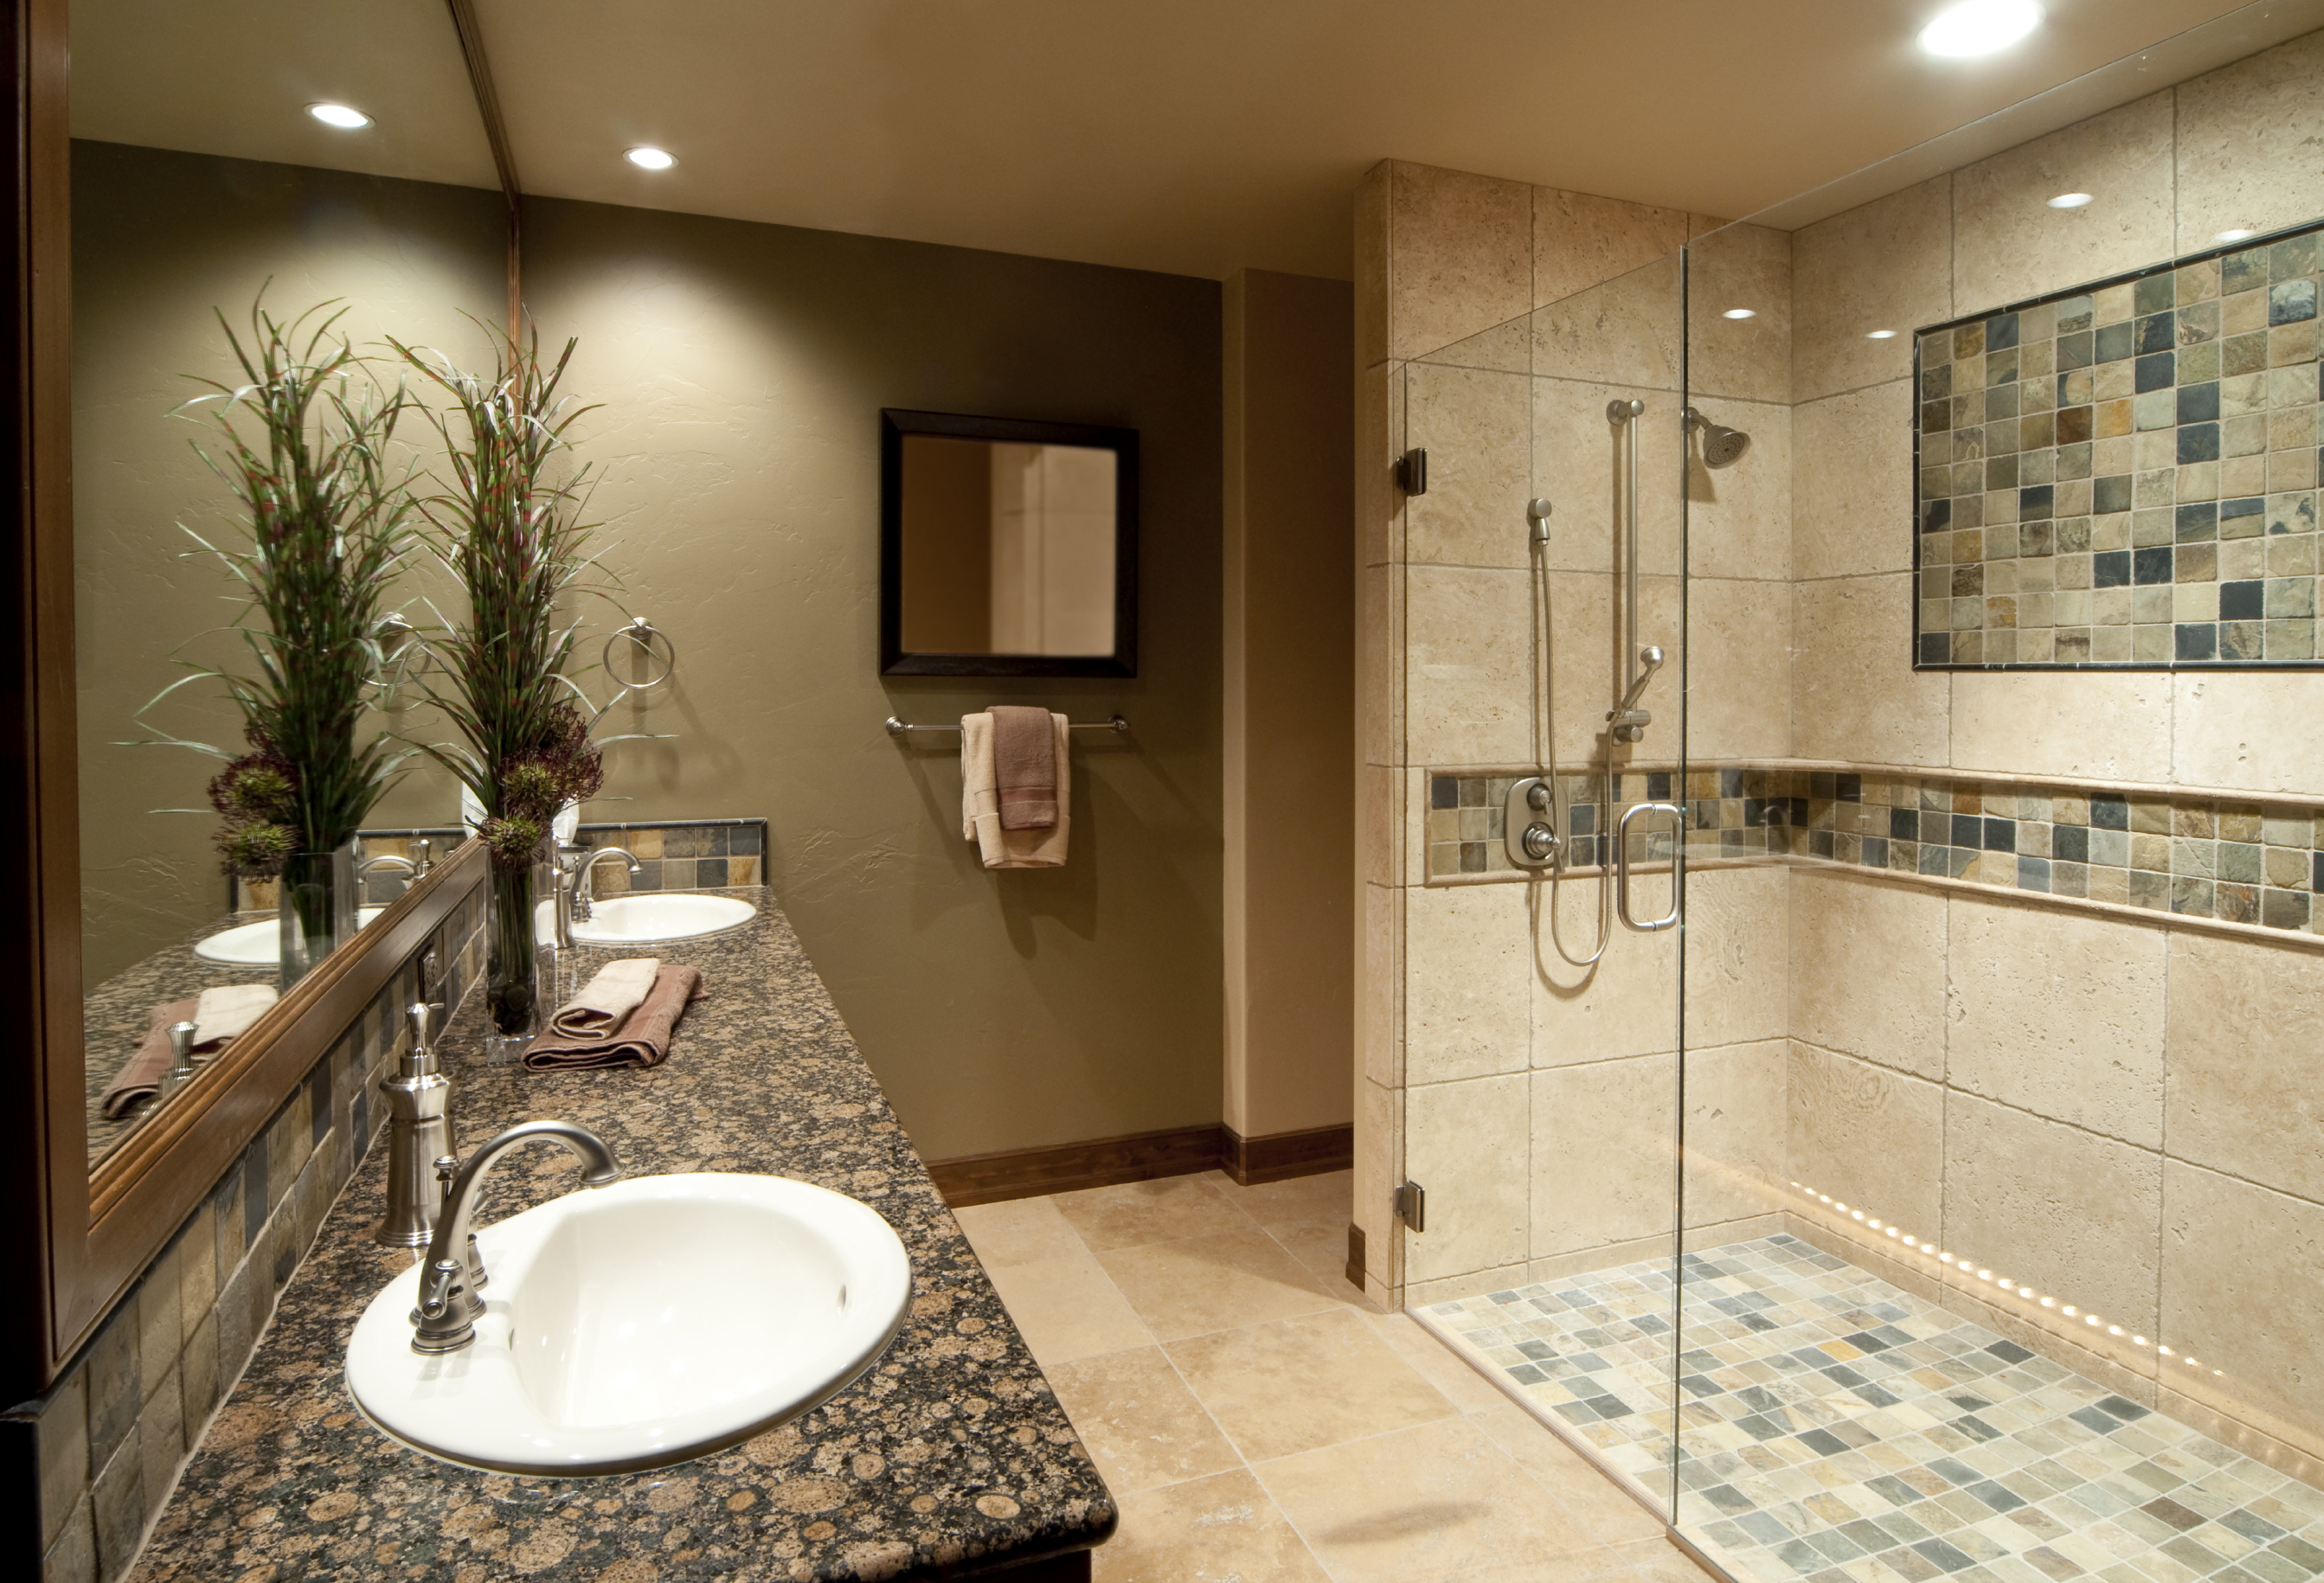 Diy Bathroom Remodel Simple Easy And Quick Inspiration